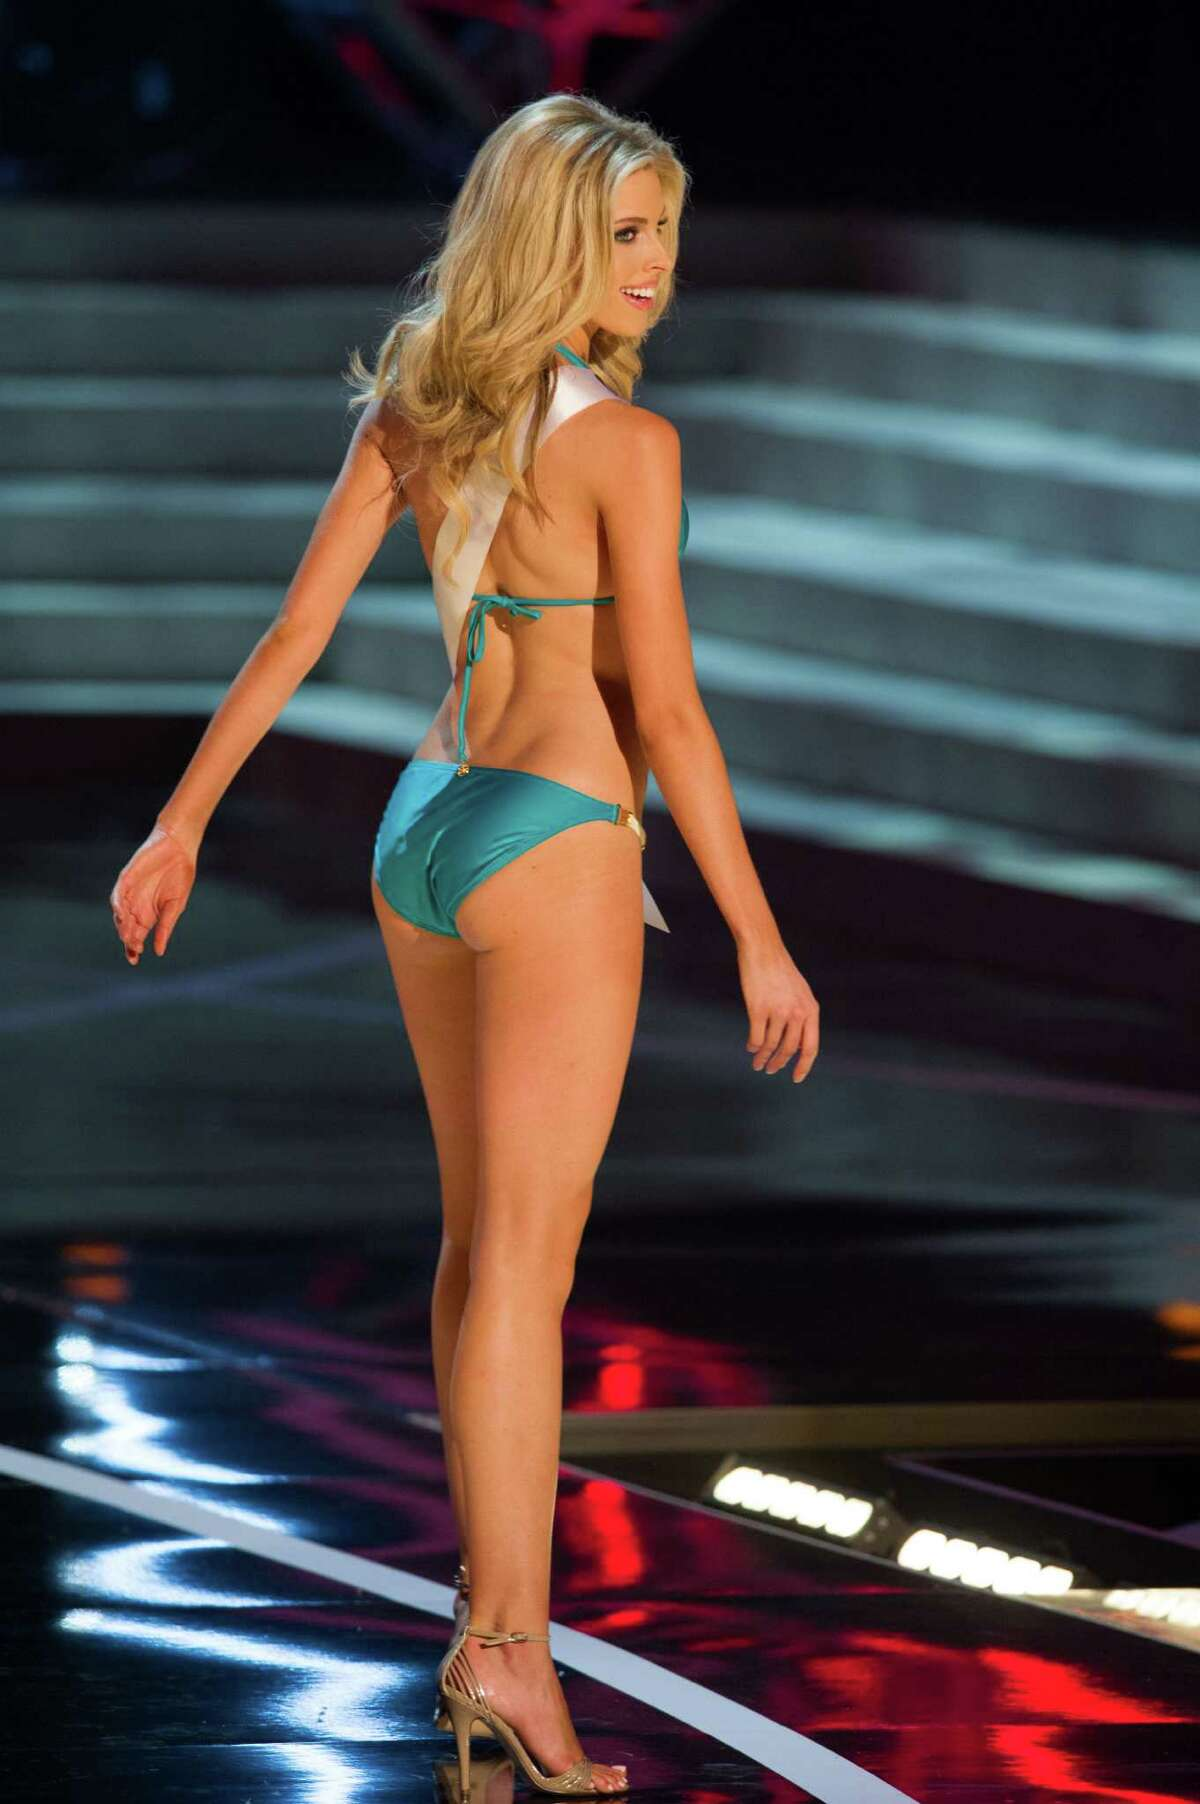 In this photo provided by the Miss Universe Organization, Miss Oklahoma USA 2013, Makenzie Muse, competes in her swimsuit during the 2013 Miss USA Competition Preliminary Show in Las Vegas on Wednesday June 12, 2013. She will compete for the title of Miss USA 2013 and the coveted Miss USA Diamond Nexus Crown on June 16, 2013.